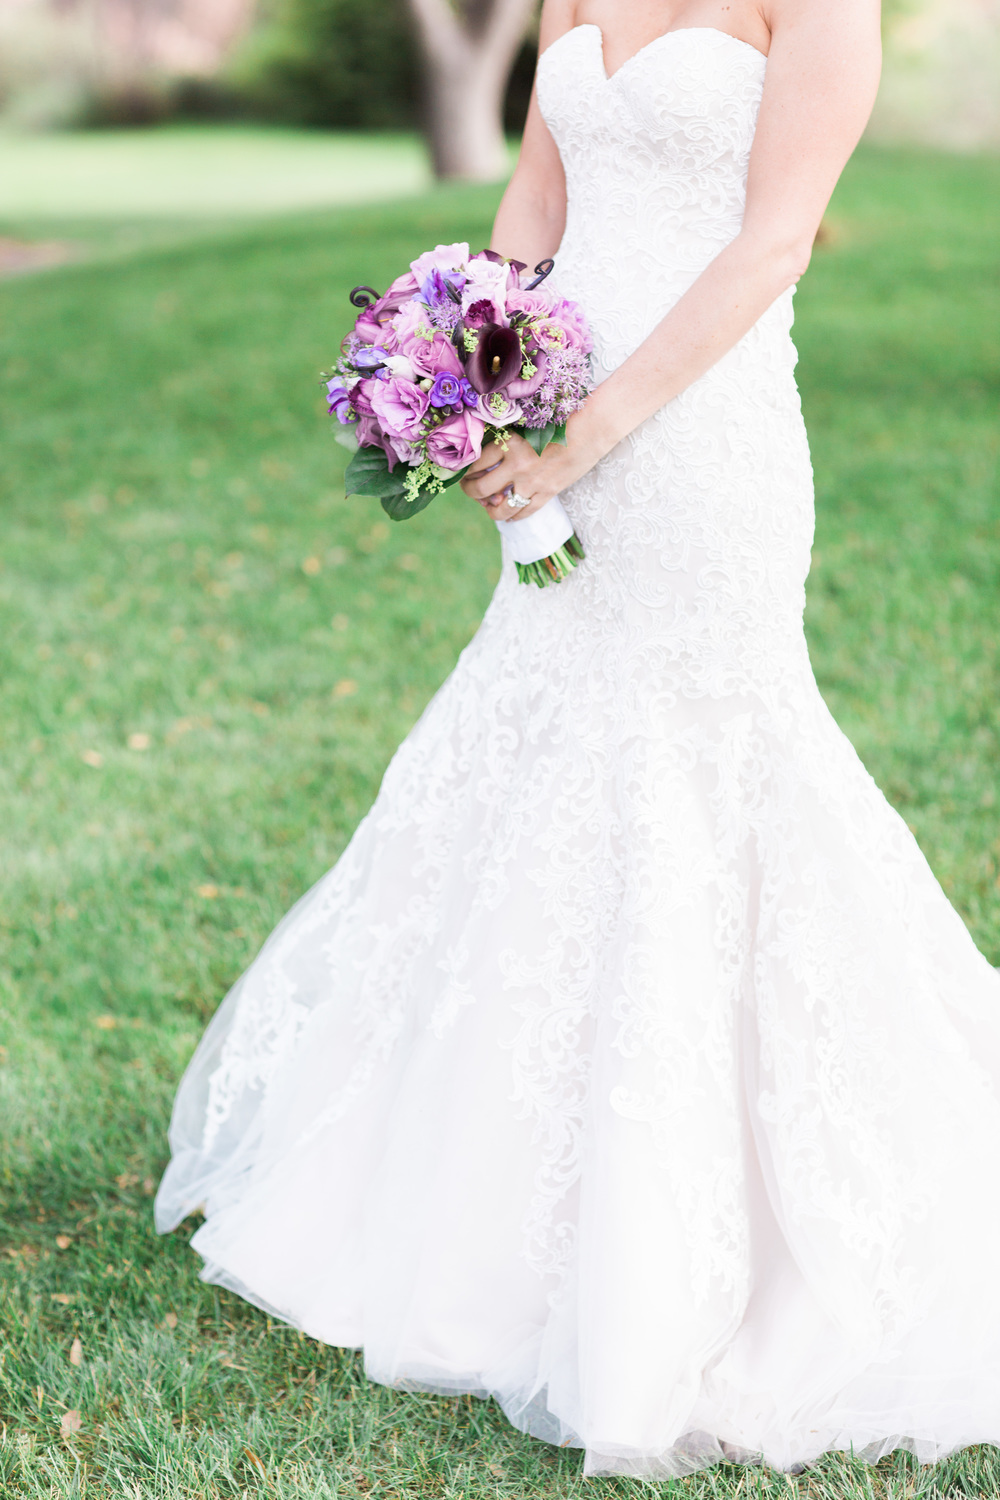 Purple bride's bouquet with gorgeous lace dress | Van Dickson Ranch Wedding | Prescott Wedding Photographers | See more at BetsyandJohn.com